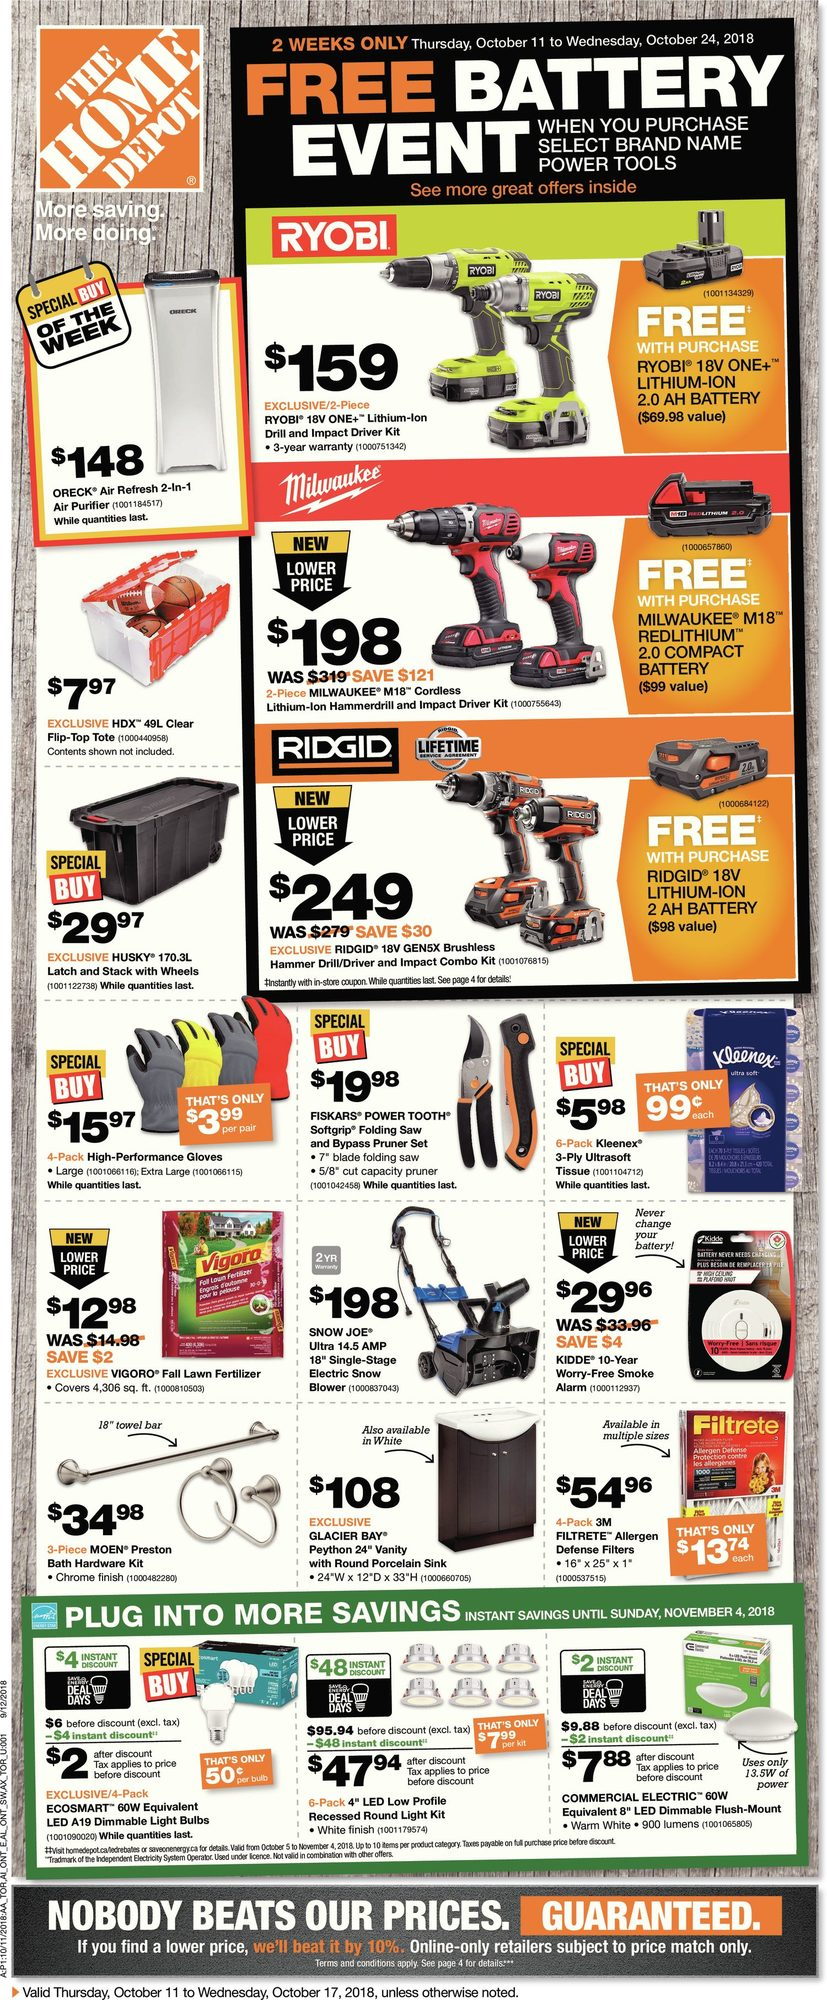 Weekly - Free Battery Event - Home Depot October 11 2018